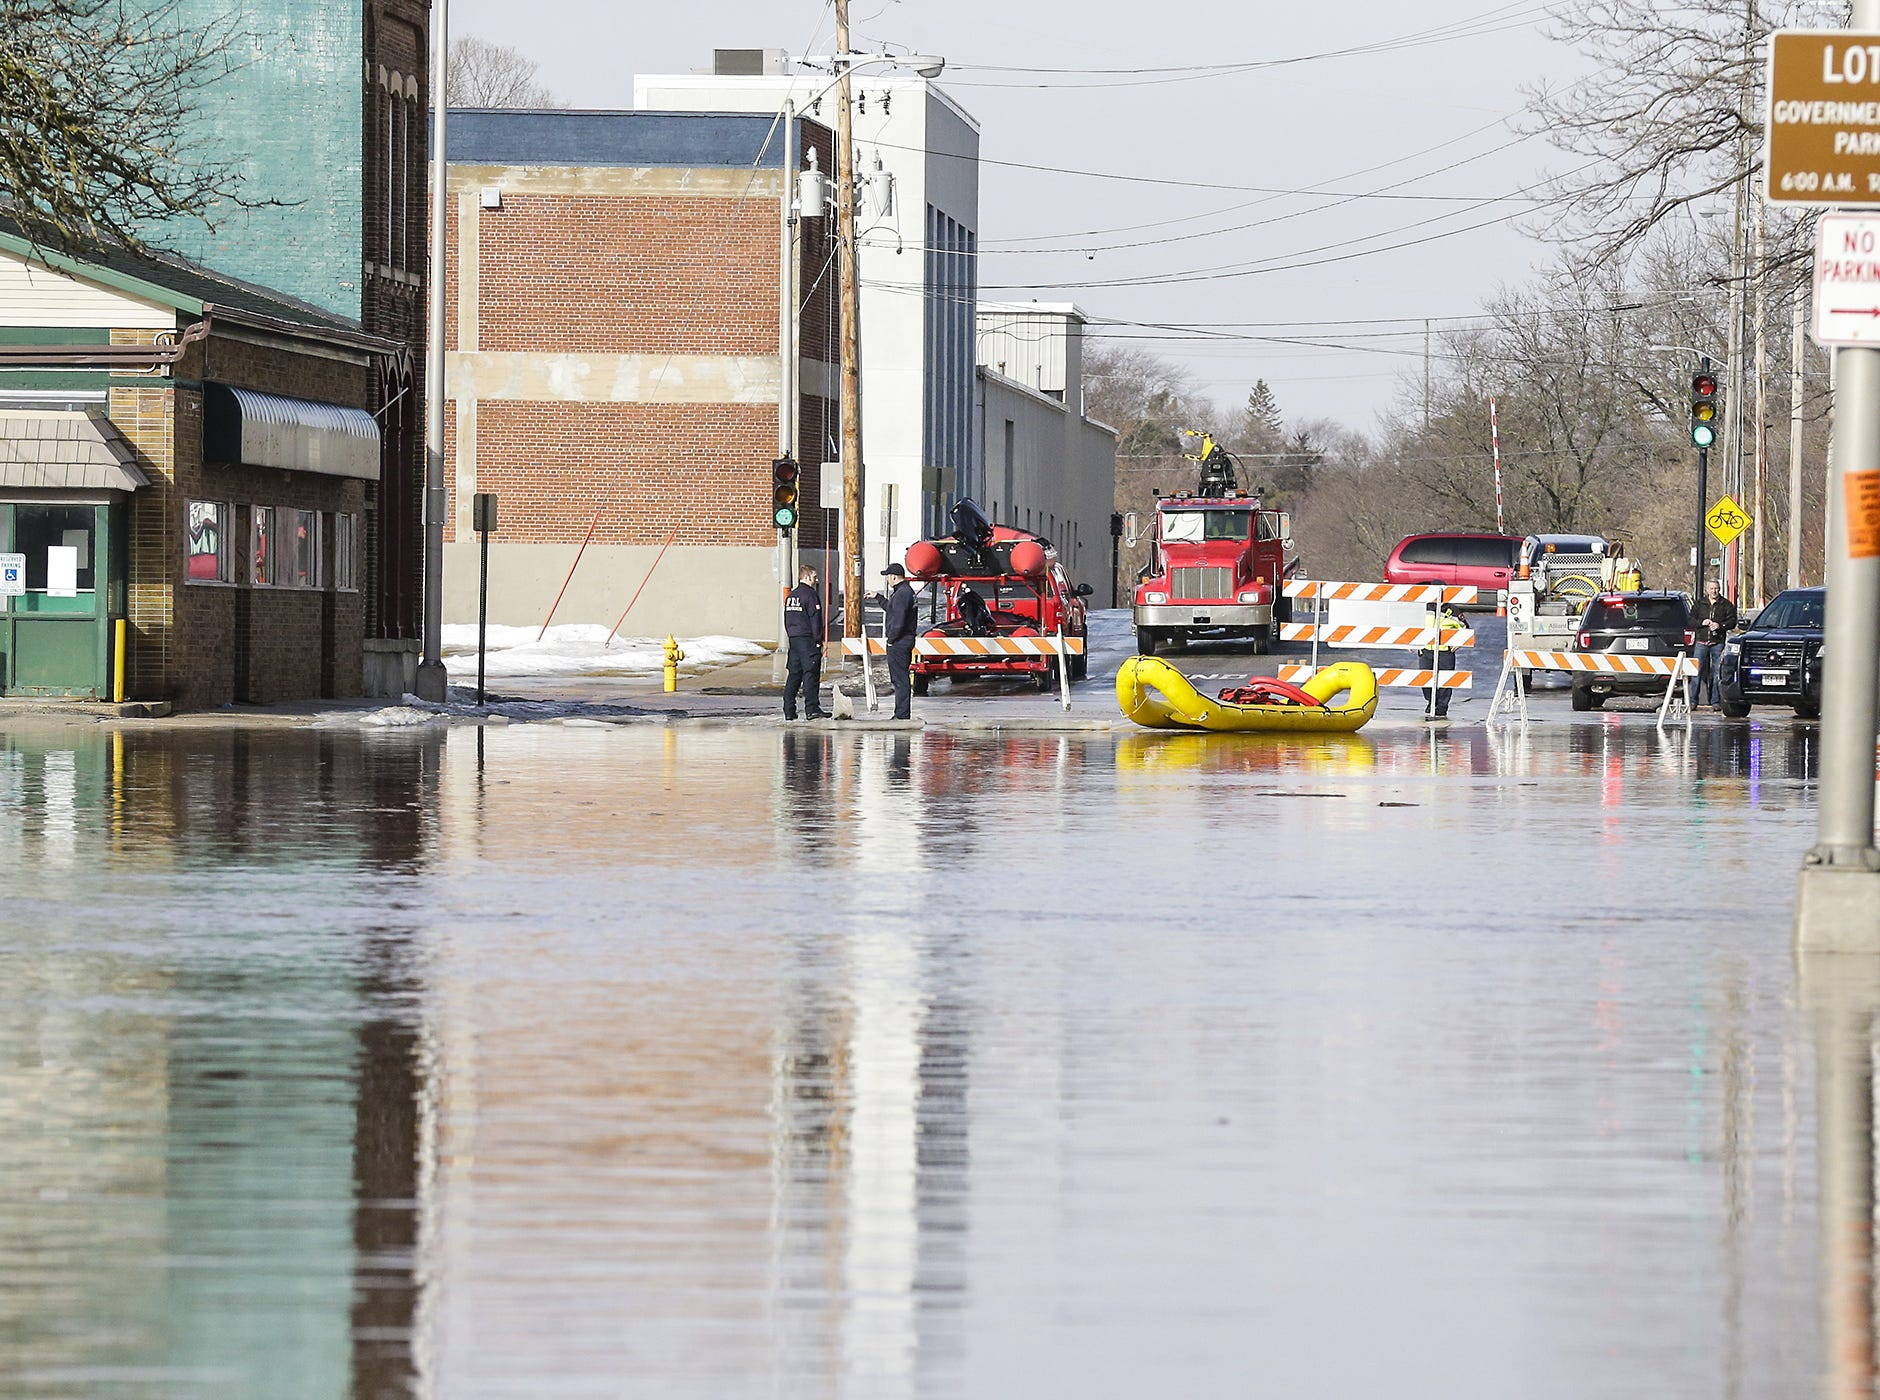 Fond du Lac Fire/Rescue members stand by with rafts Thursday, March 14, 2019 at the intersection of Military and Western in Fond du Lac, Wis. Ice jams on the east branch of the Fond du Lac River caused localized flooding problems in the city. Doug Raflik/USA TODAY NETWORK-Wisconsin